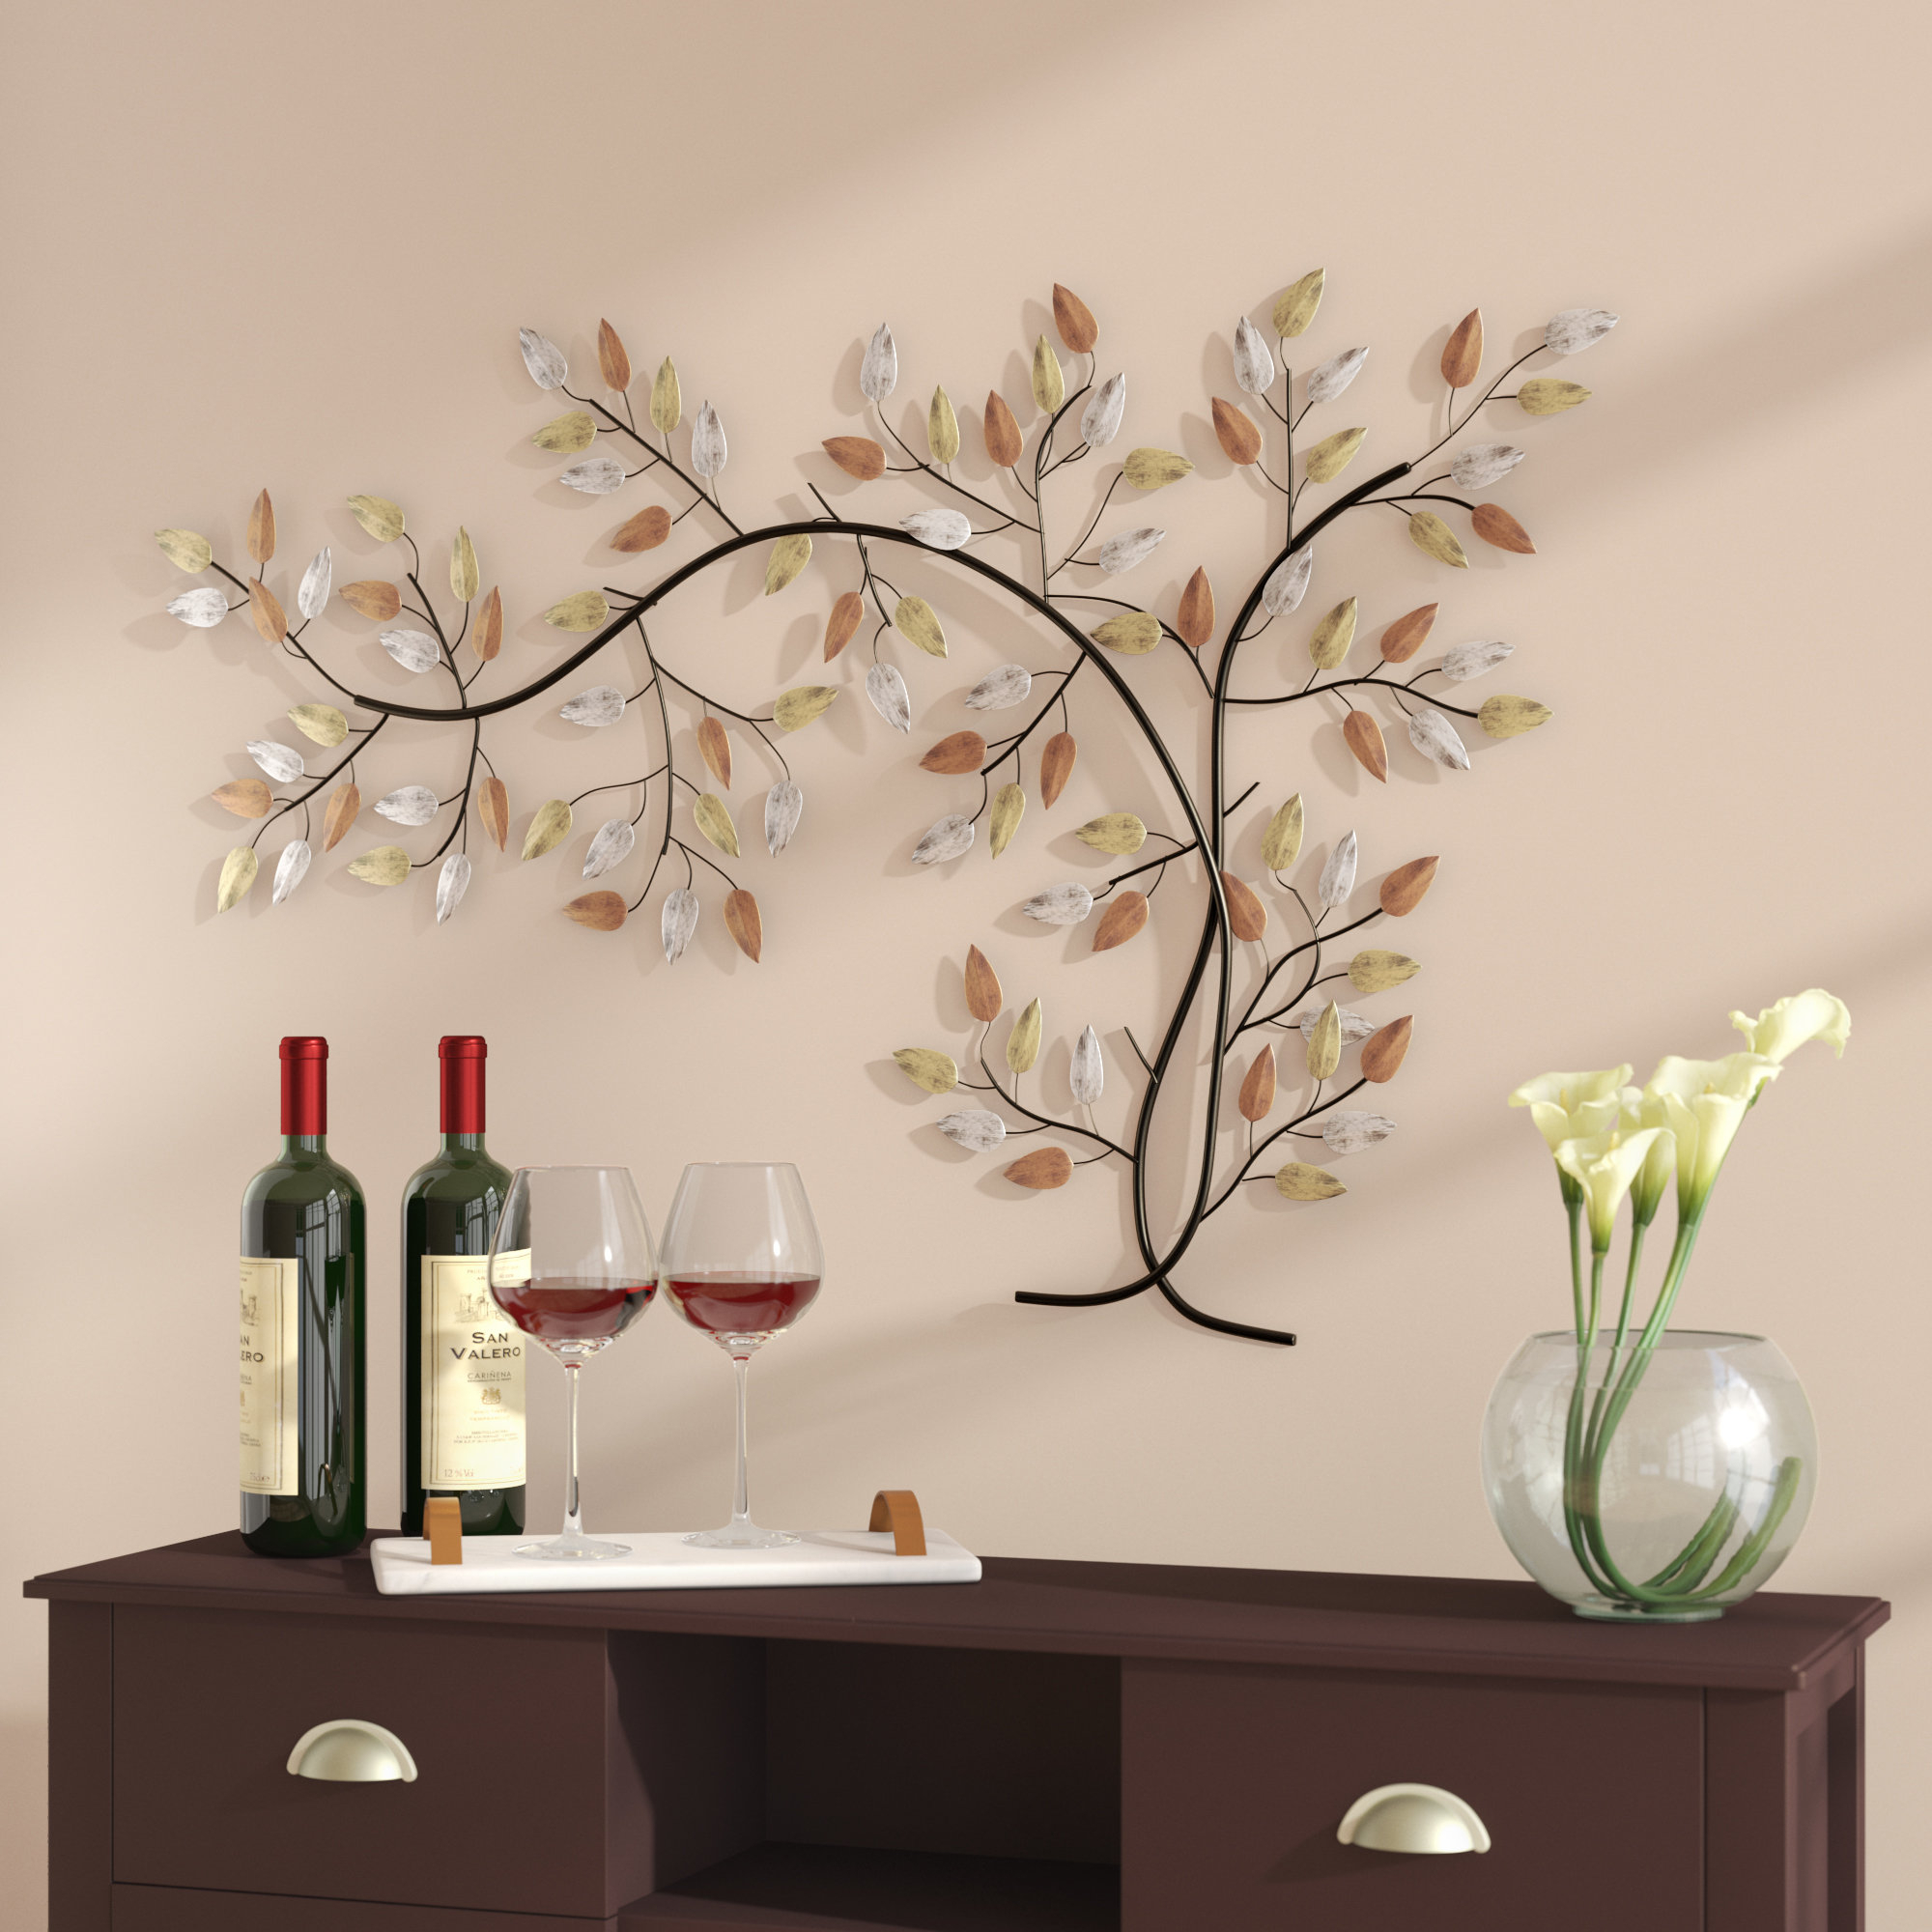 Windswept Tree Wall Decor | Wayfair Pertaining To Windswept Tree Wall Decor By World Menagerie (View 22 of 30)